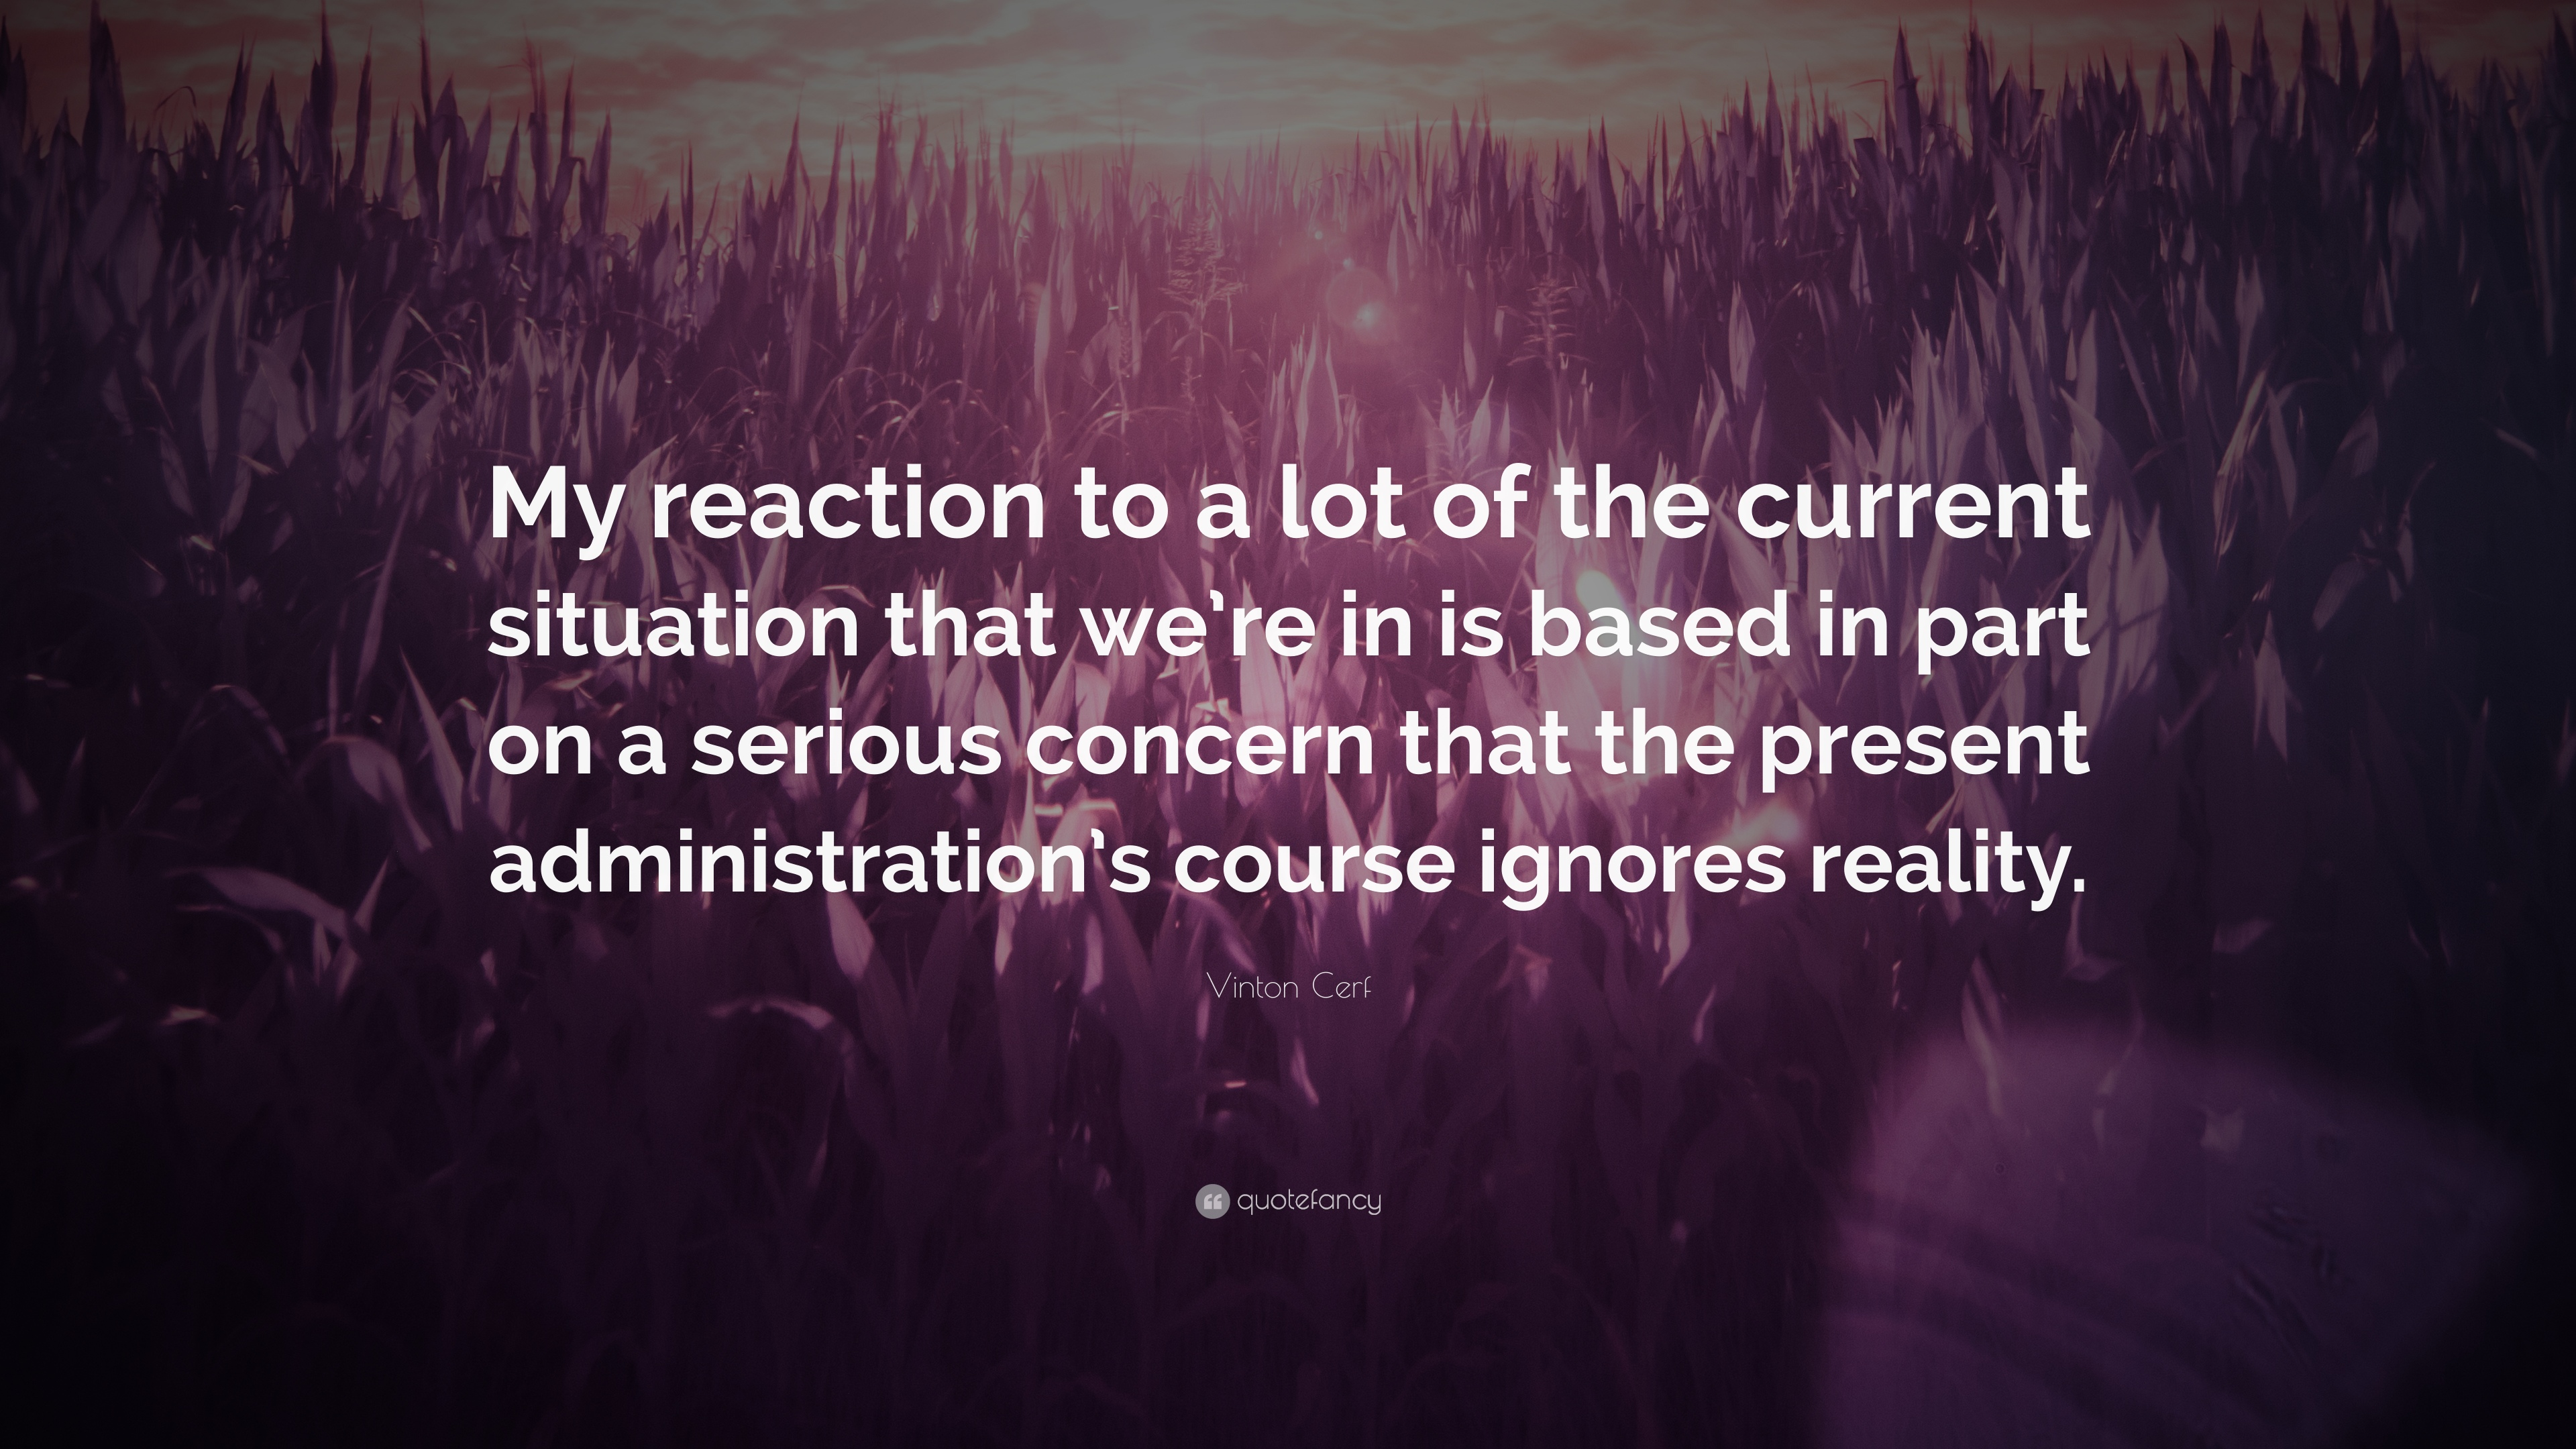 Vinton Cerf Quotes (51 Wallpapers)